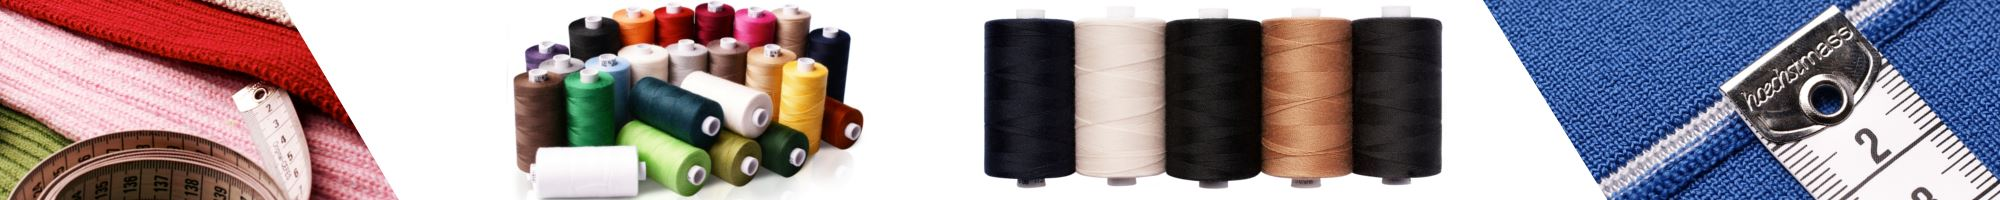 sewing thread/yarn